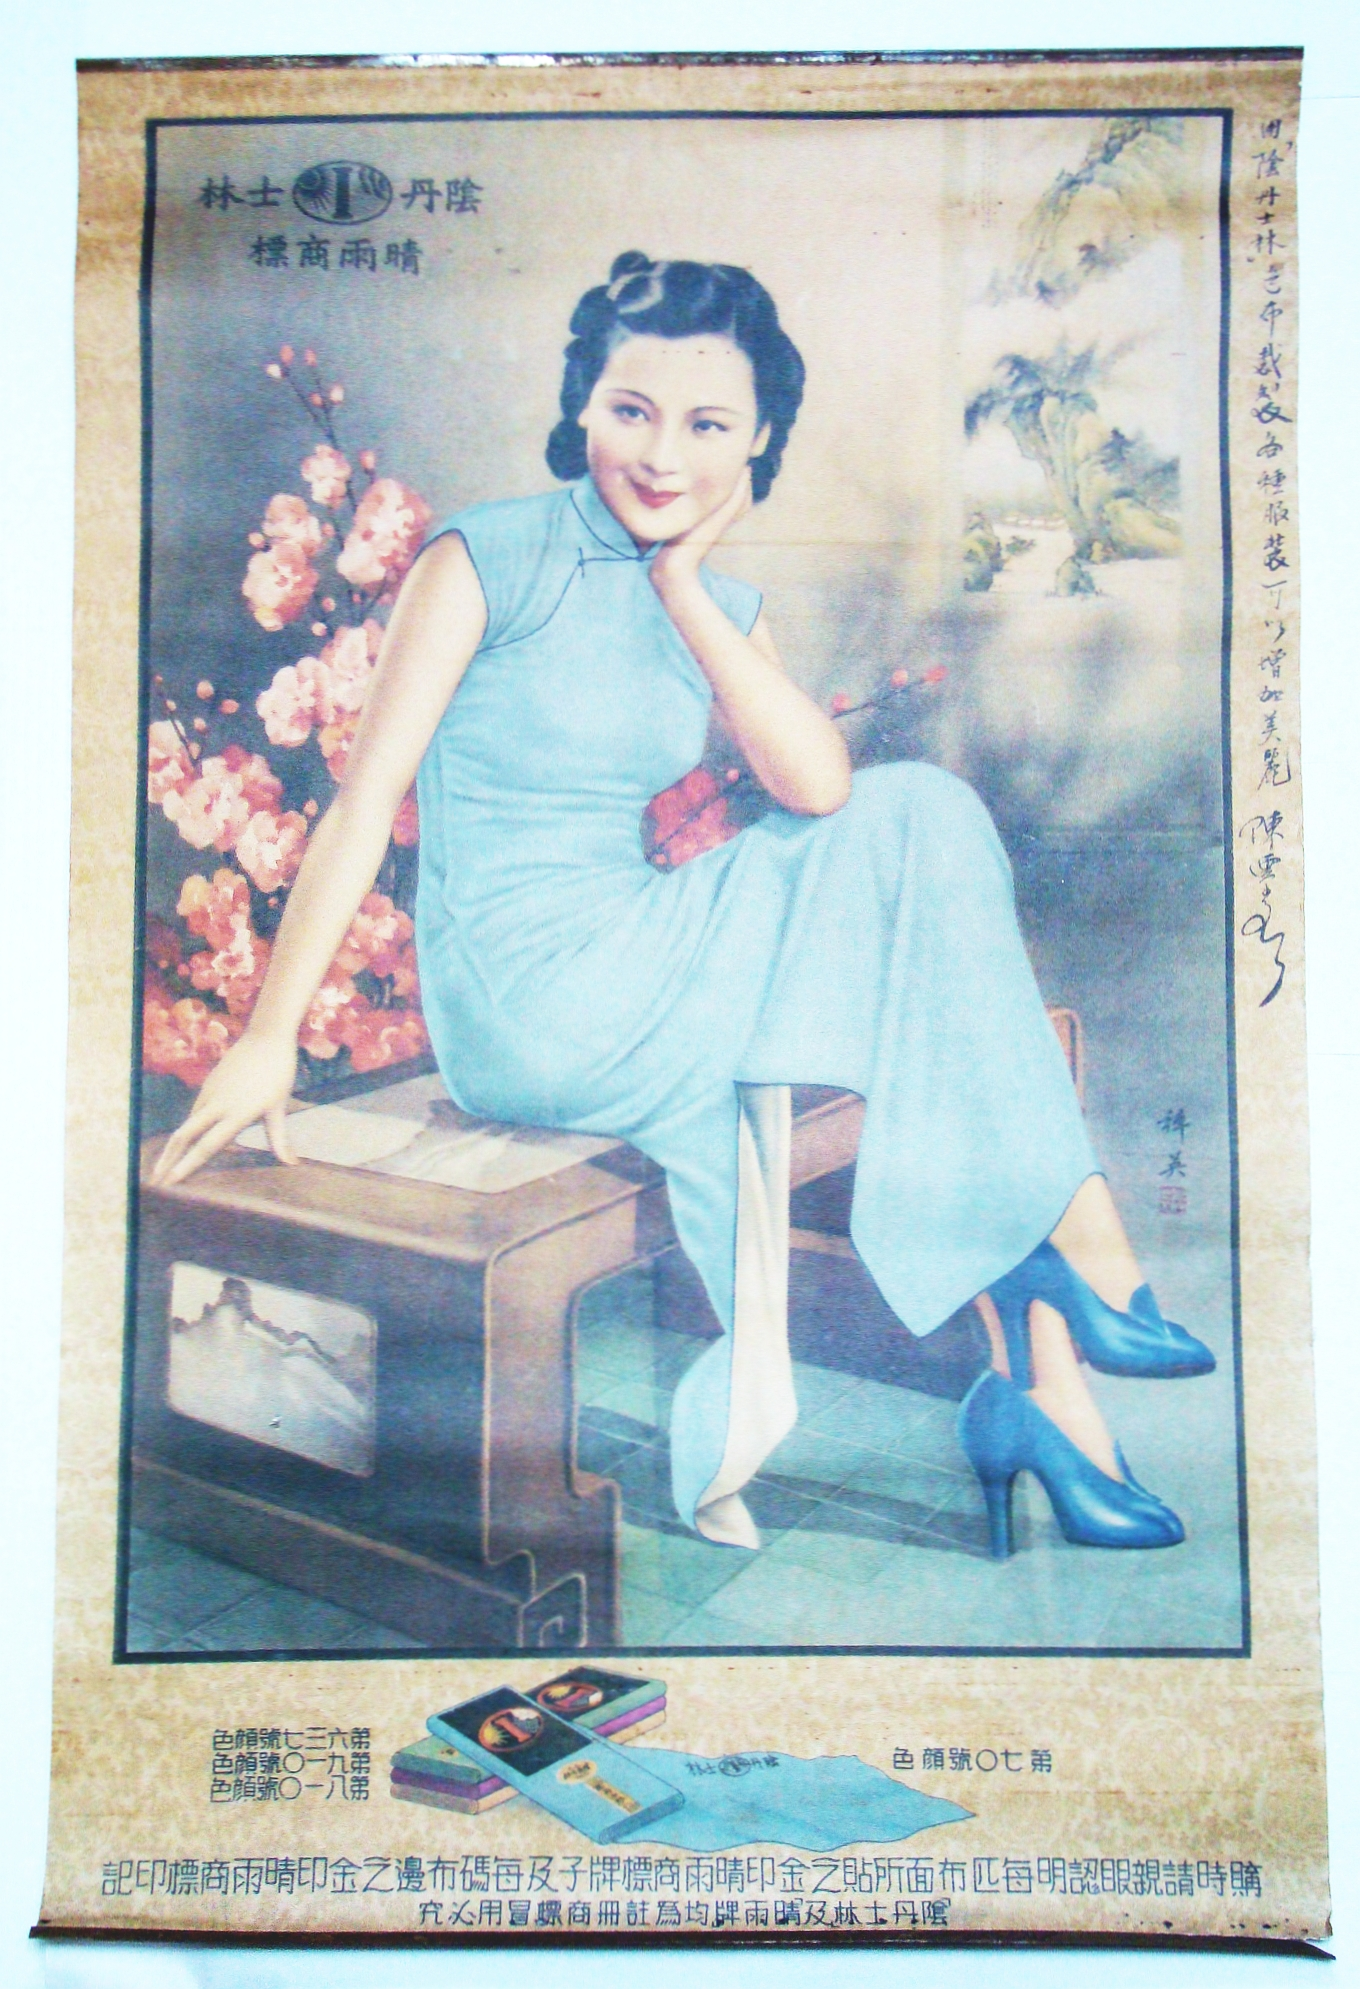 Image for Chinese / Shanghai Replica Advertising Poster - Features Elegant Lady in Blue Dress Seated on Bench